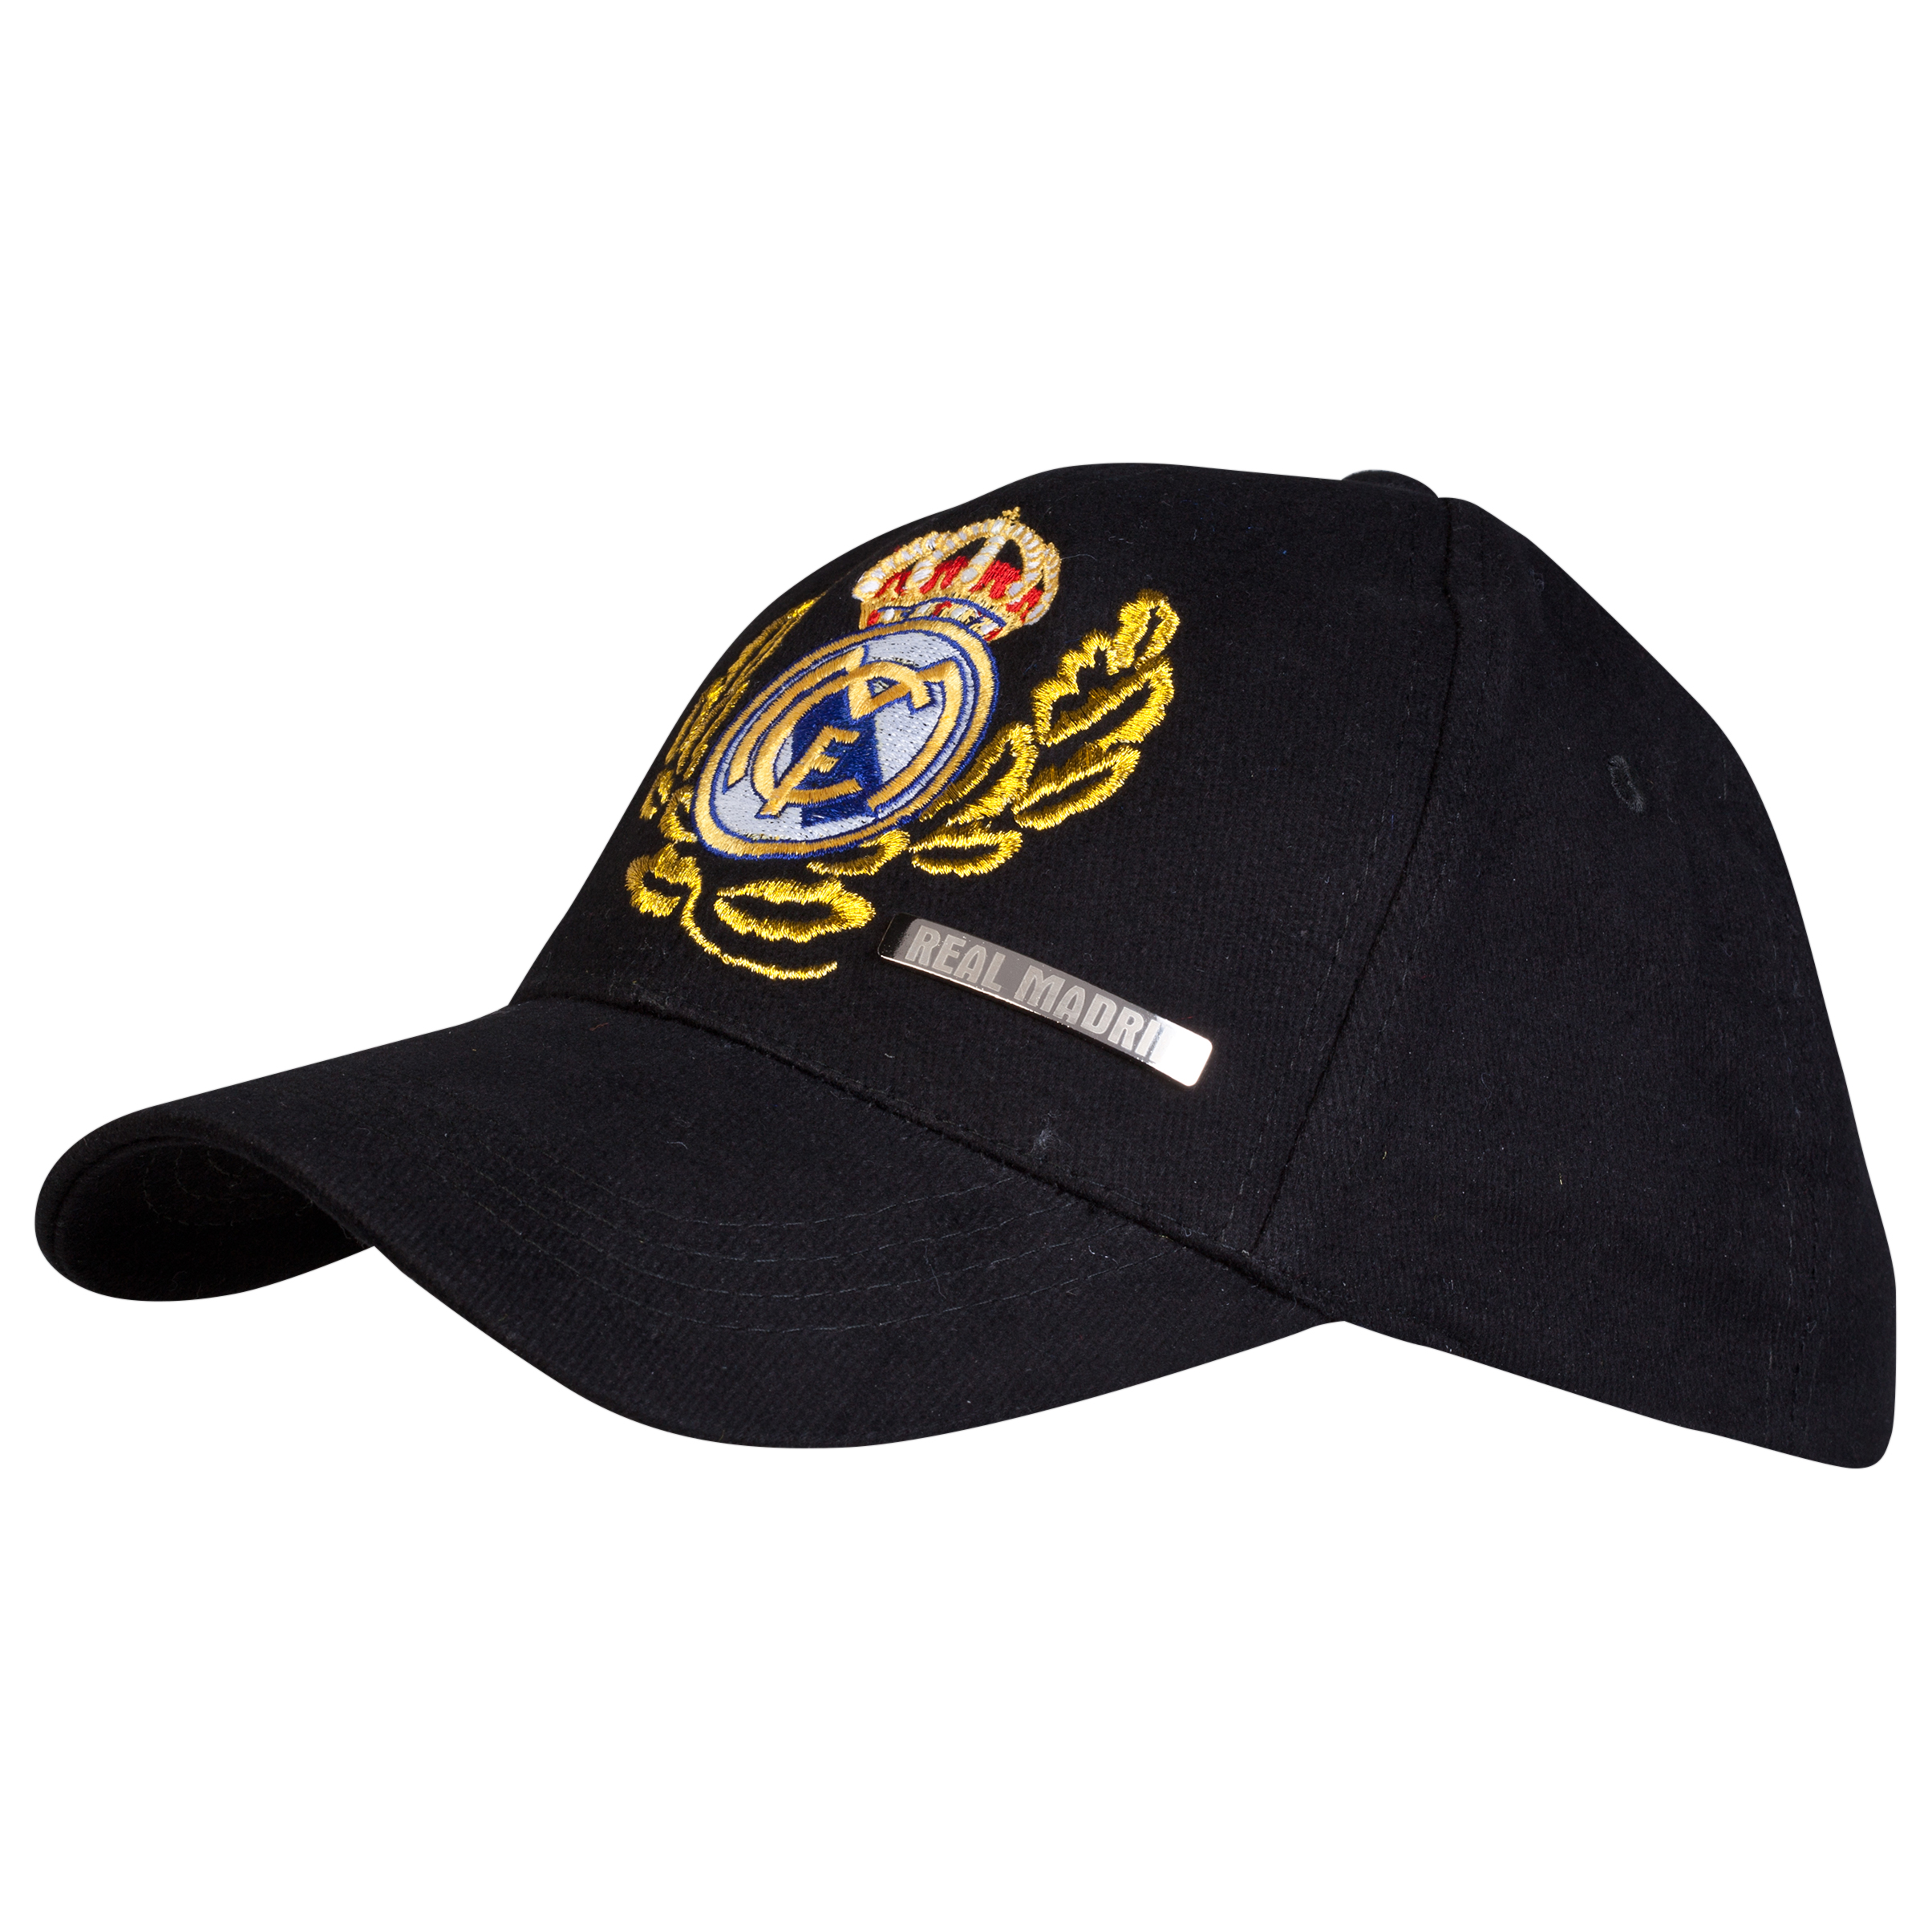 Real Madrid Crest Cap - Black - Junior